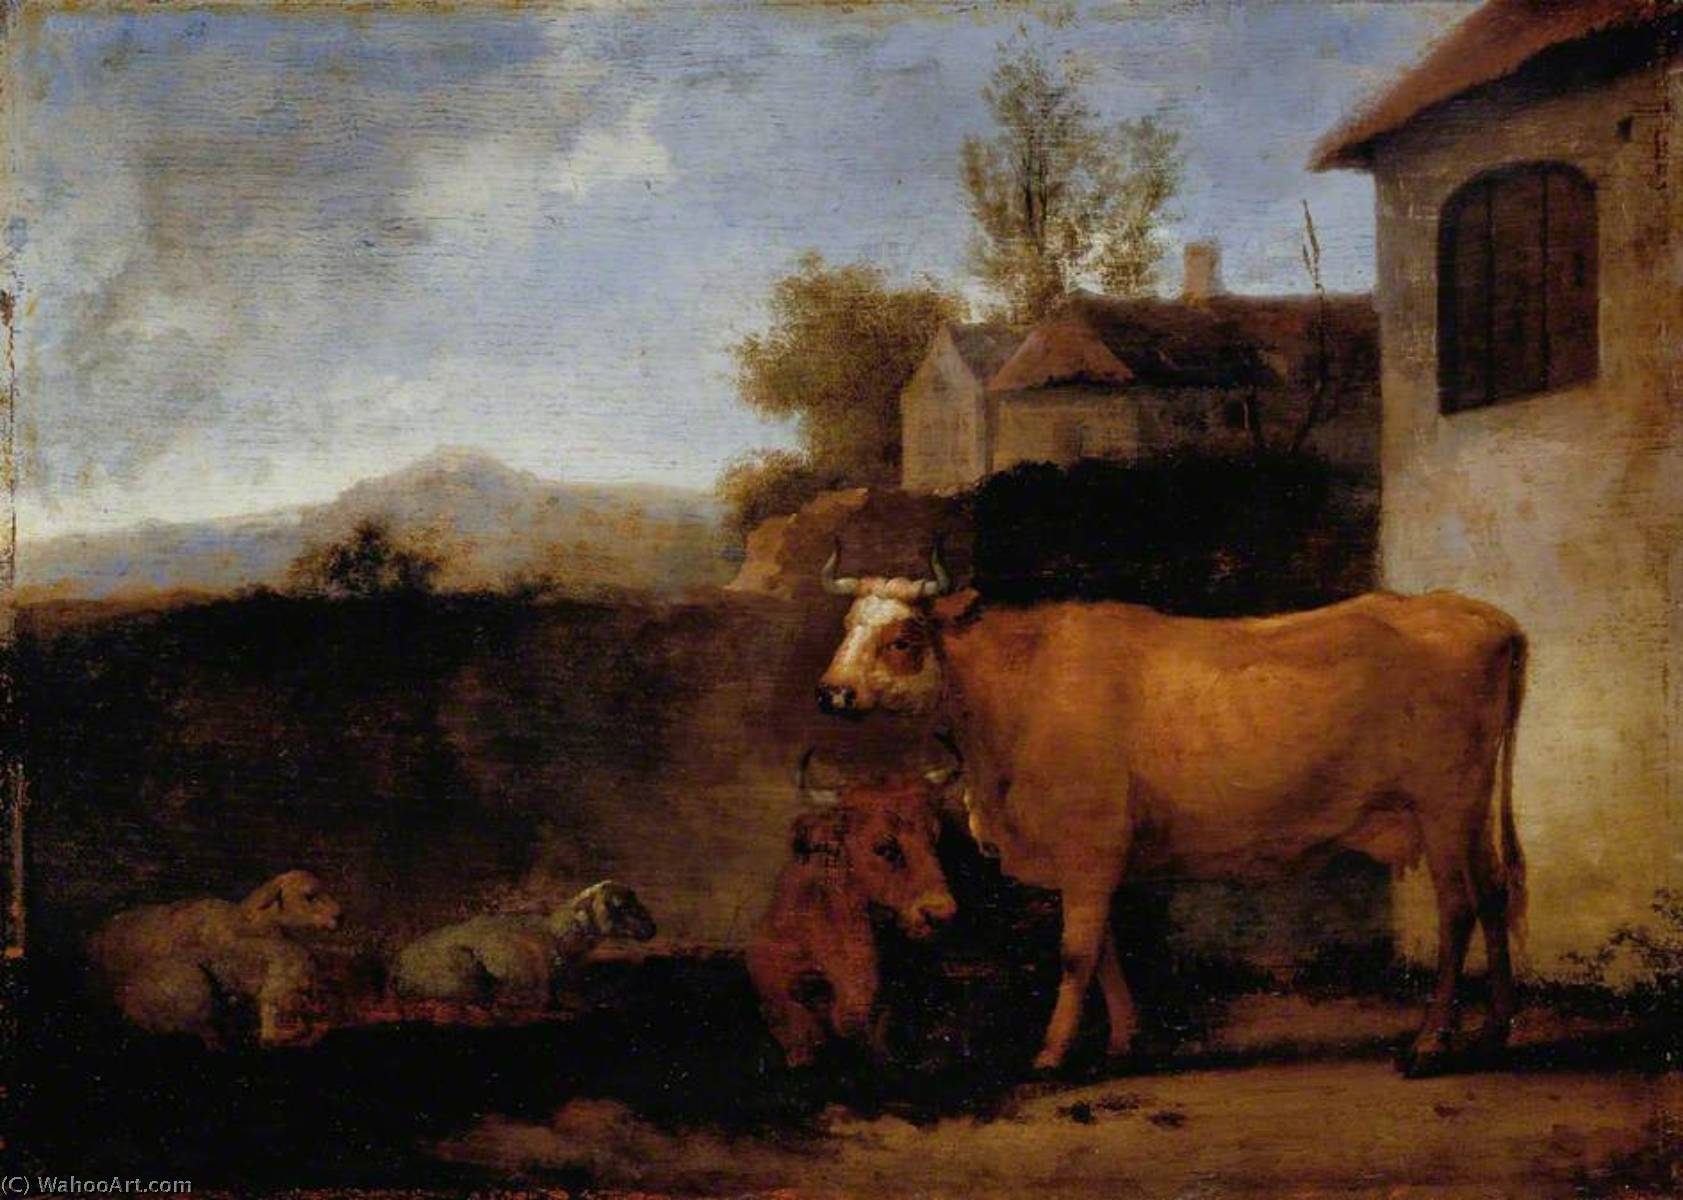 Order Museum Quality Copies | Cows and Sheep, 1722 by Abraham Pietersz Van Calraet (1642-1722) | WahooArt.com